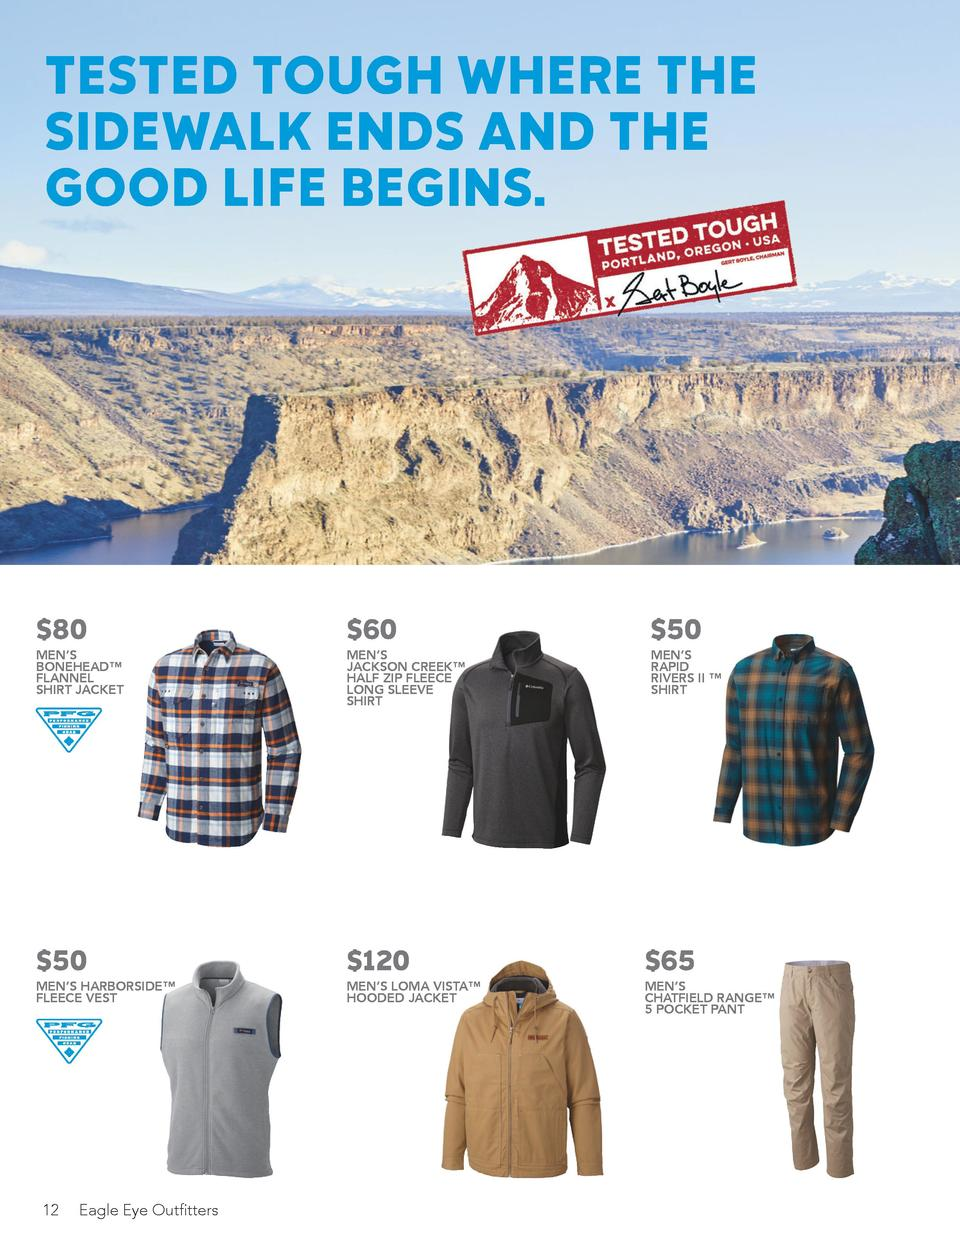 TESTED TOUGH WHERE THE SIDEWALK ENDS AND THE GOOD LIFE BEGINS.  60.00  MEN   S JACKSON CREEK    HALF ZIP FLEECE LONG SLEEV...